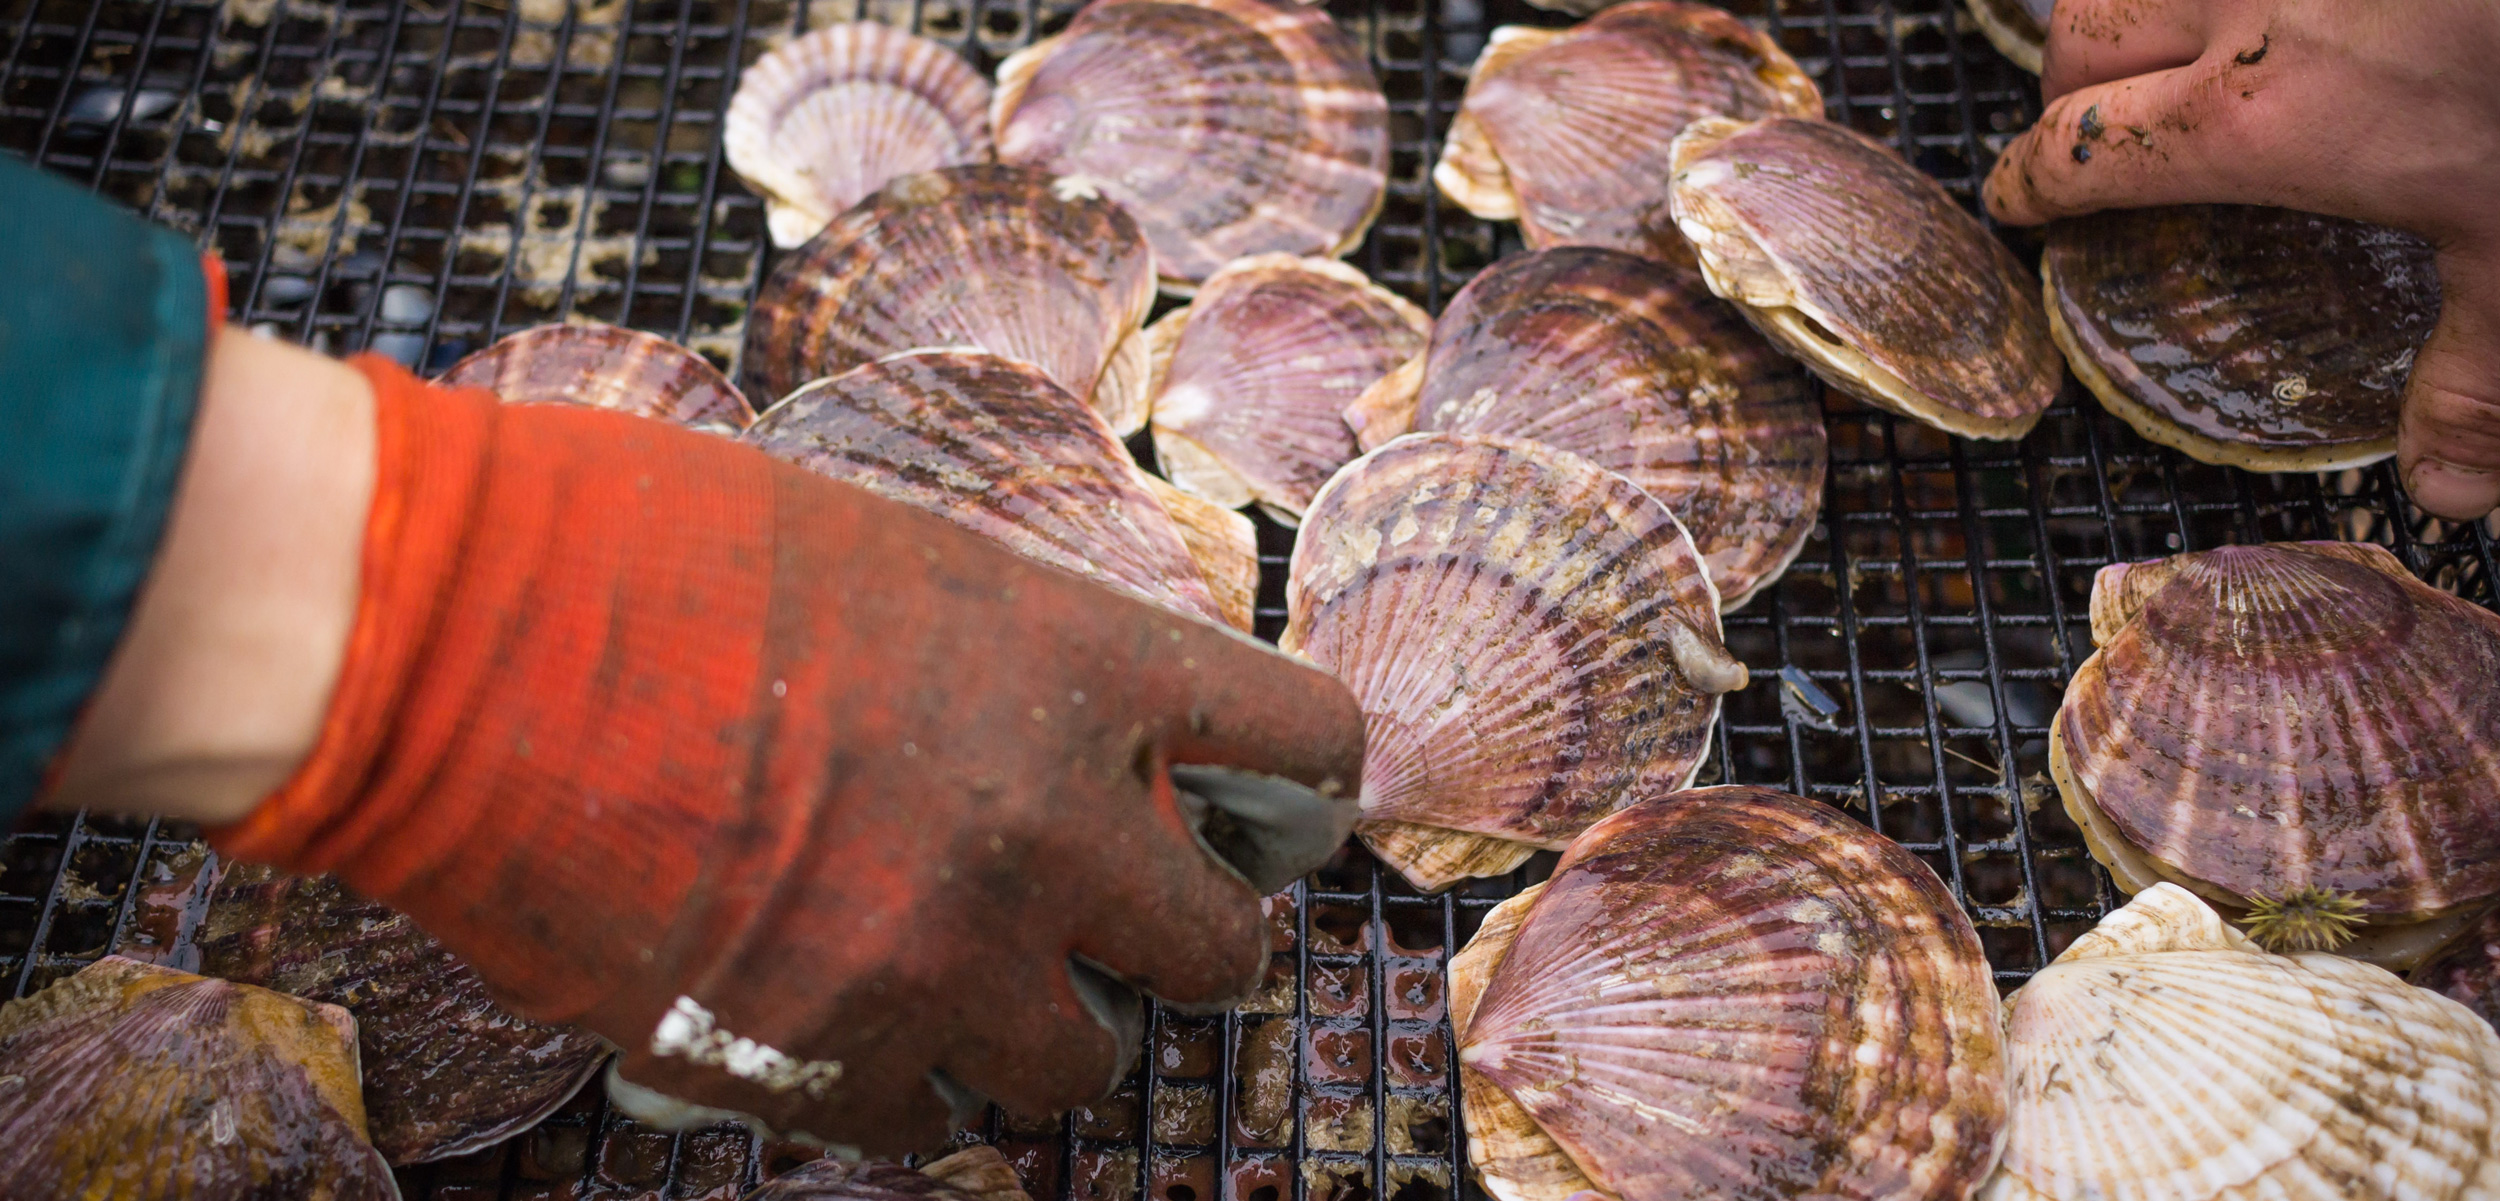 Scallops, like other shellfish, are facing a multitude of threats from climate change. Photo by Josh Silberg